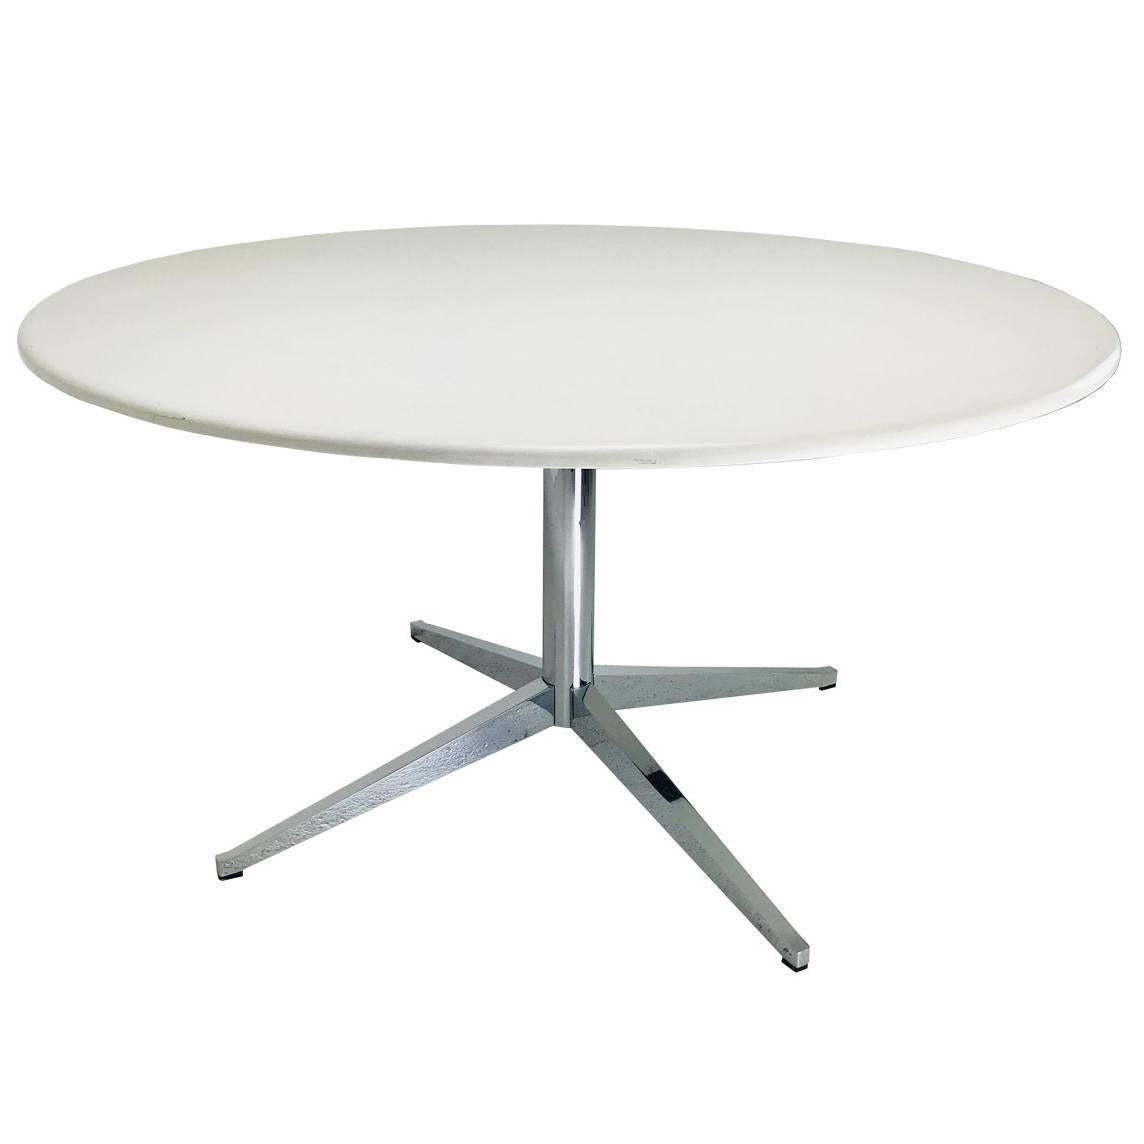 Knoll Table Knoll Starburst Table Base With Corian Table Top